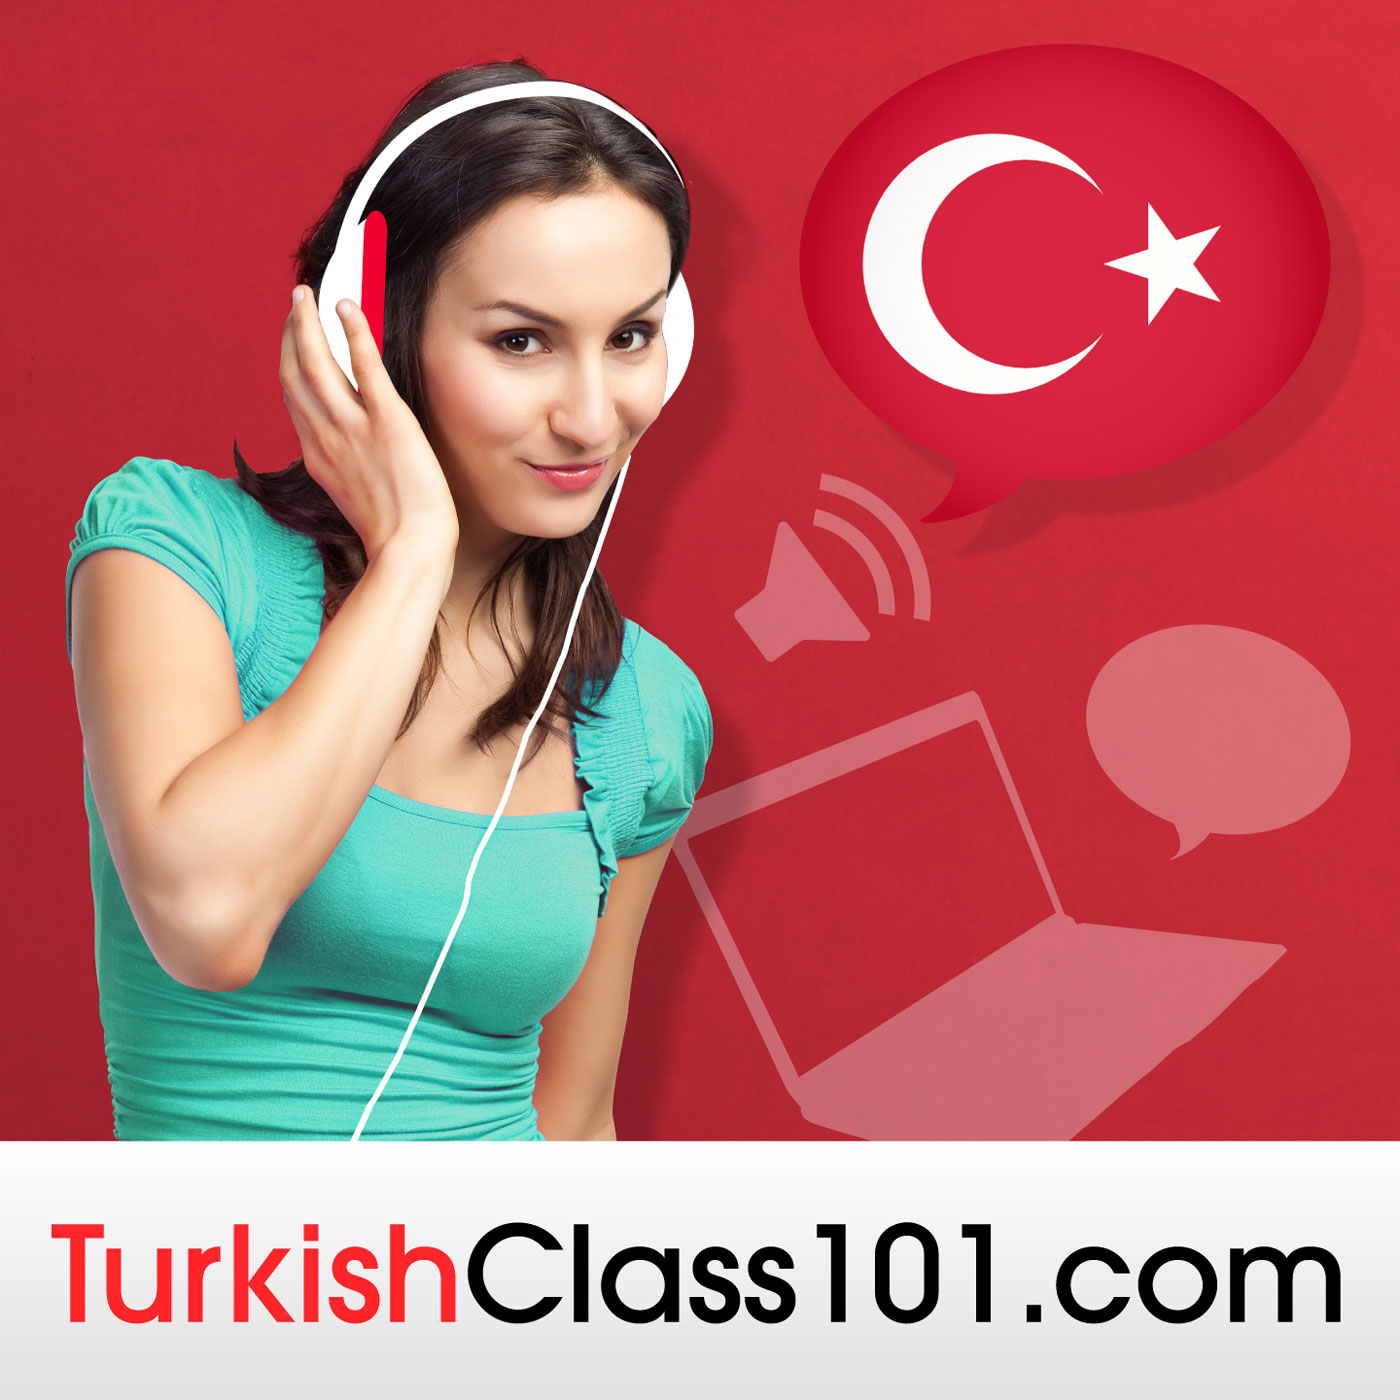 Learn turkish turkishclass101 by innovativelanguage on learn turkish turkishclass101 by innovativelanguage on apple podcasts m4hsunfo